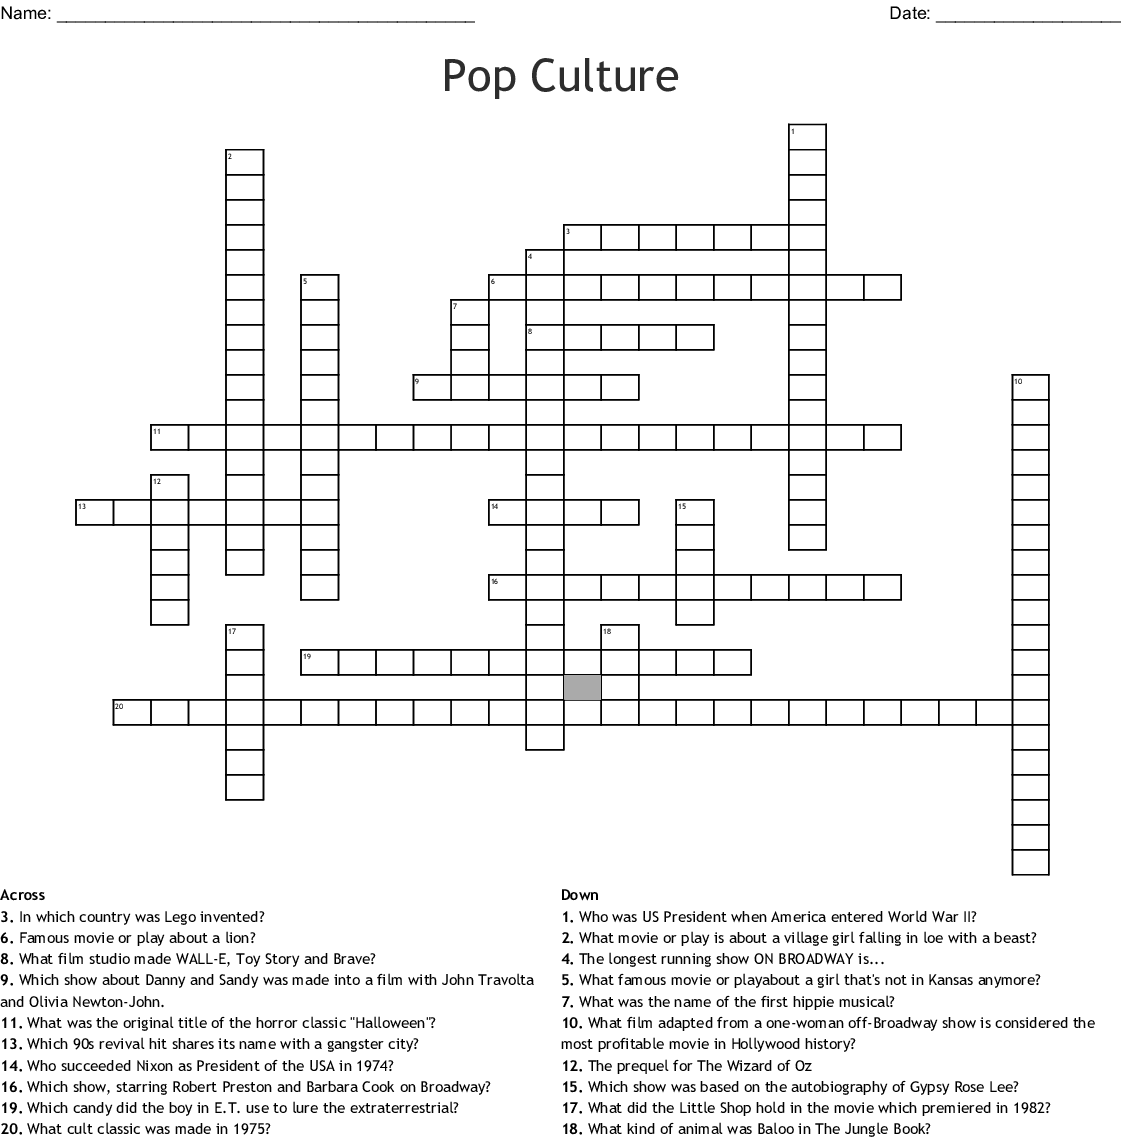 graphic relating to Celebrity Crossword Printable titled Pop Tradition Crossword - WordMint